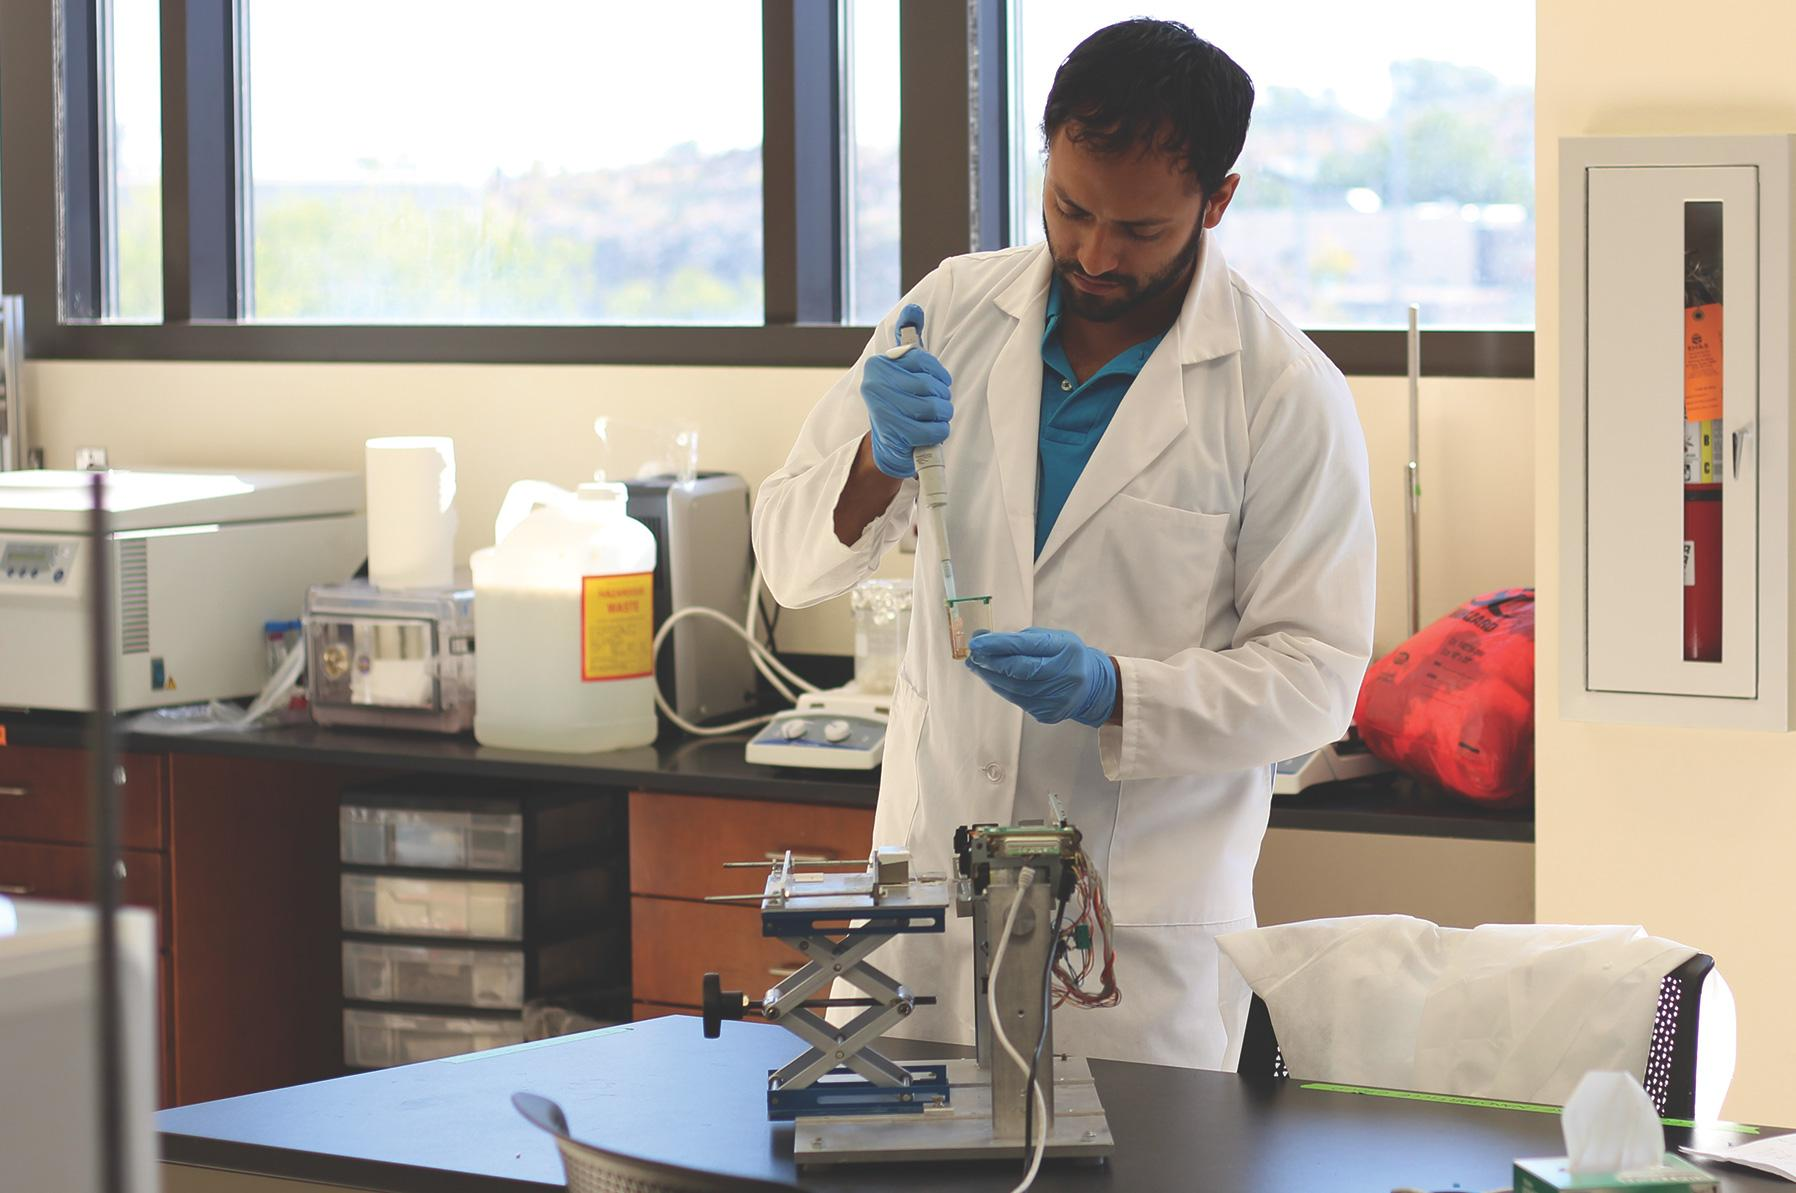 Doctoral biomedical engineering student, Julio Rincon helped develop a new device that helps HIV patients monitor their health quickly and at a low cost.